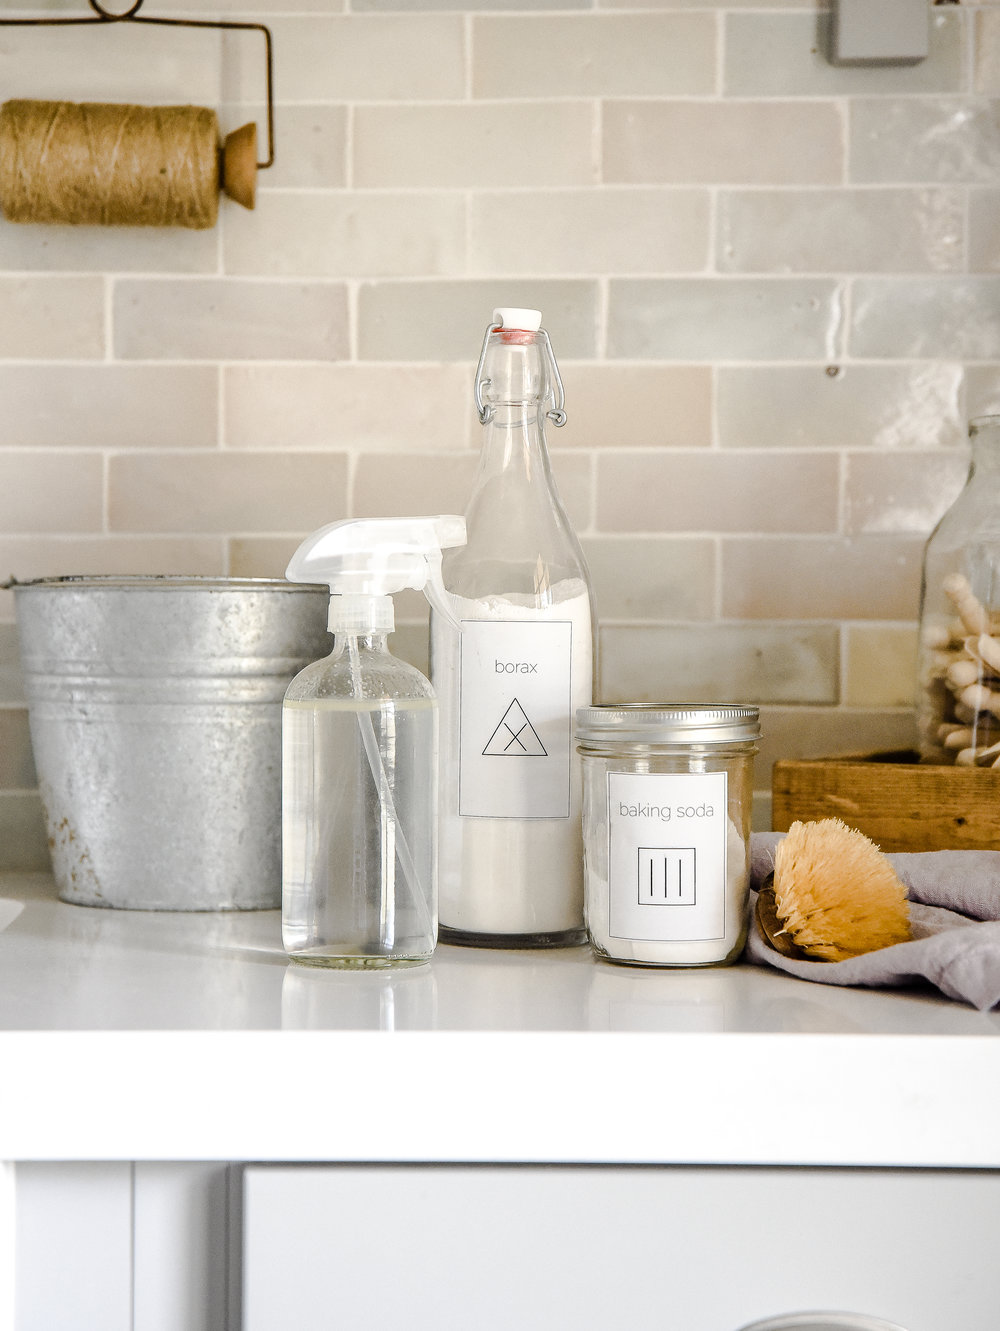 How to green clean your home with these all natural cleaning products! Bio-degradable and safe for your family, your home will sparkle without the use of chemicals! #greencleaning #organiccleaning boxwoodavenue.com